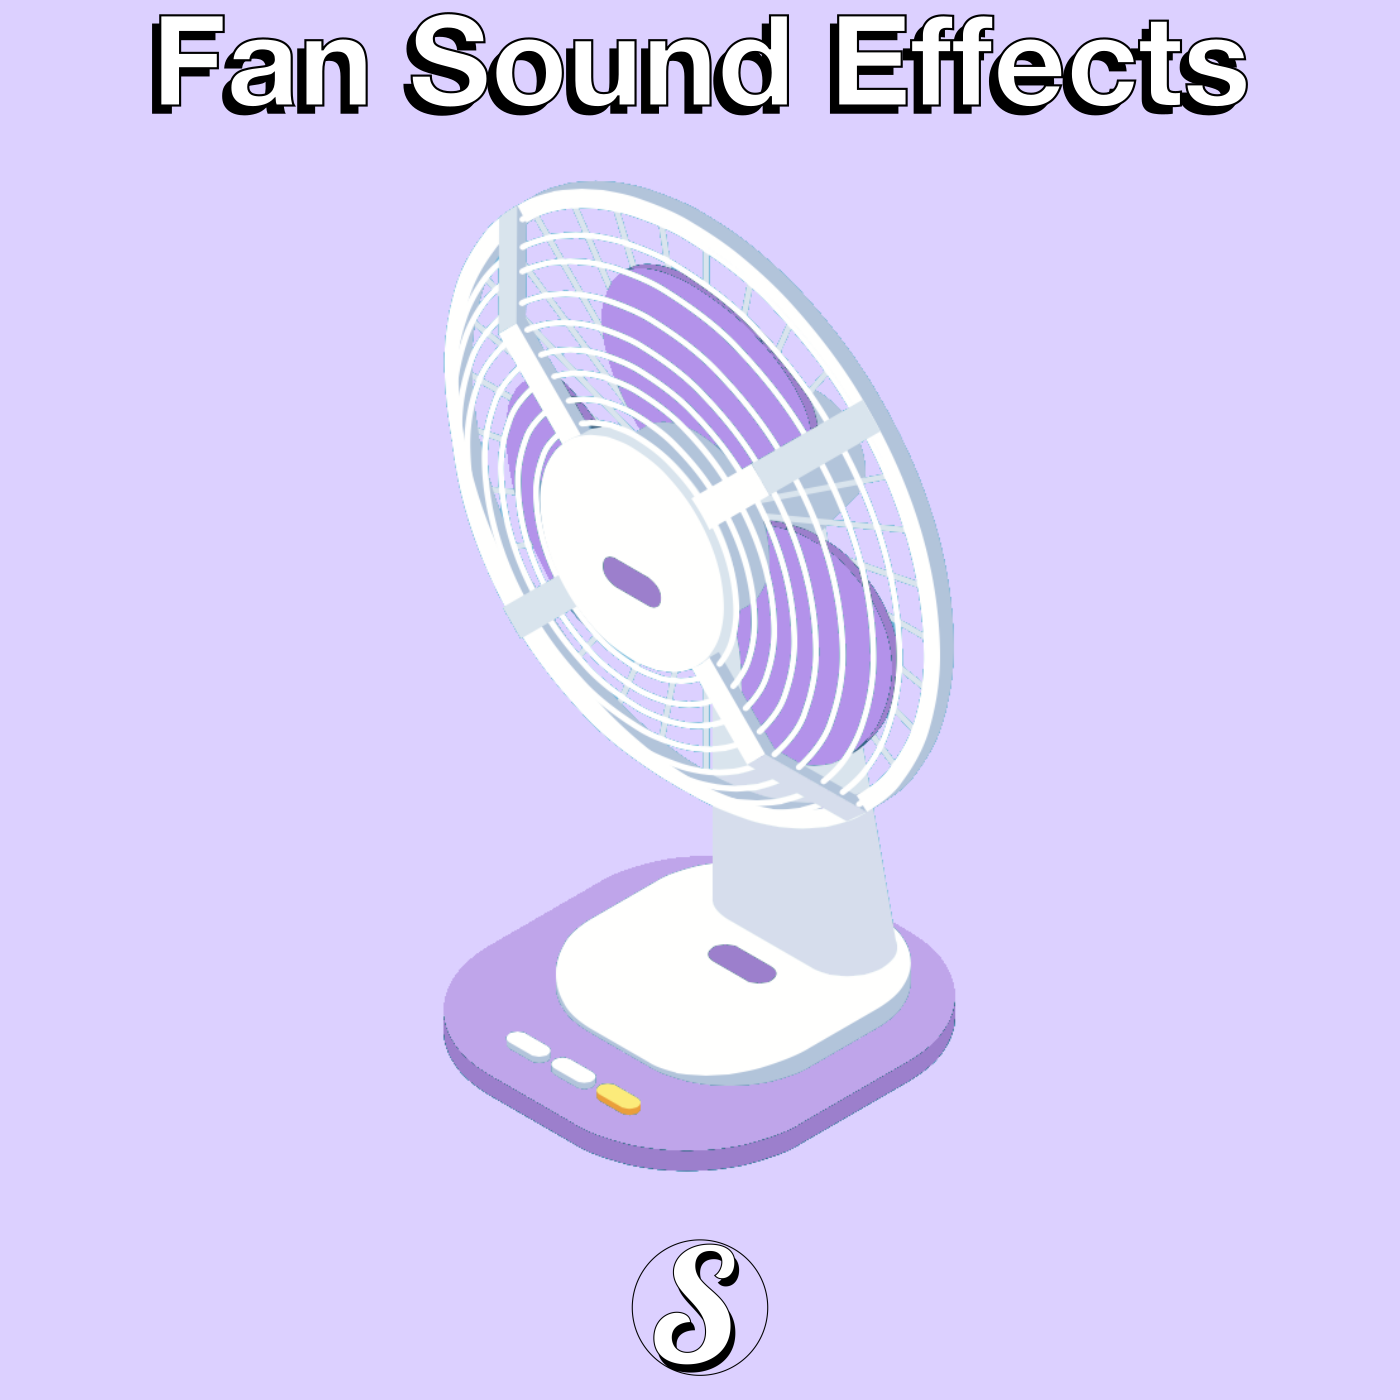 Free Sound Effects – Fan Sounds [24bit/48kHz]